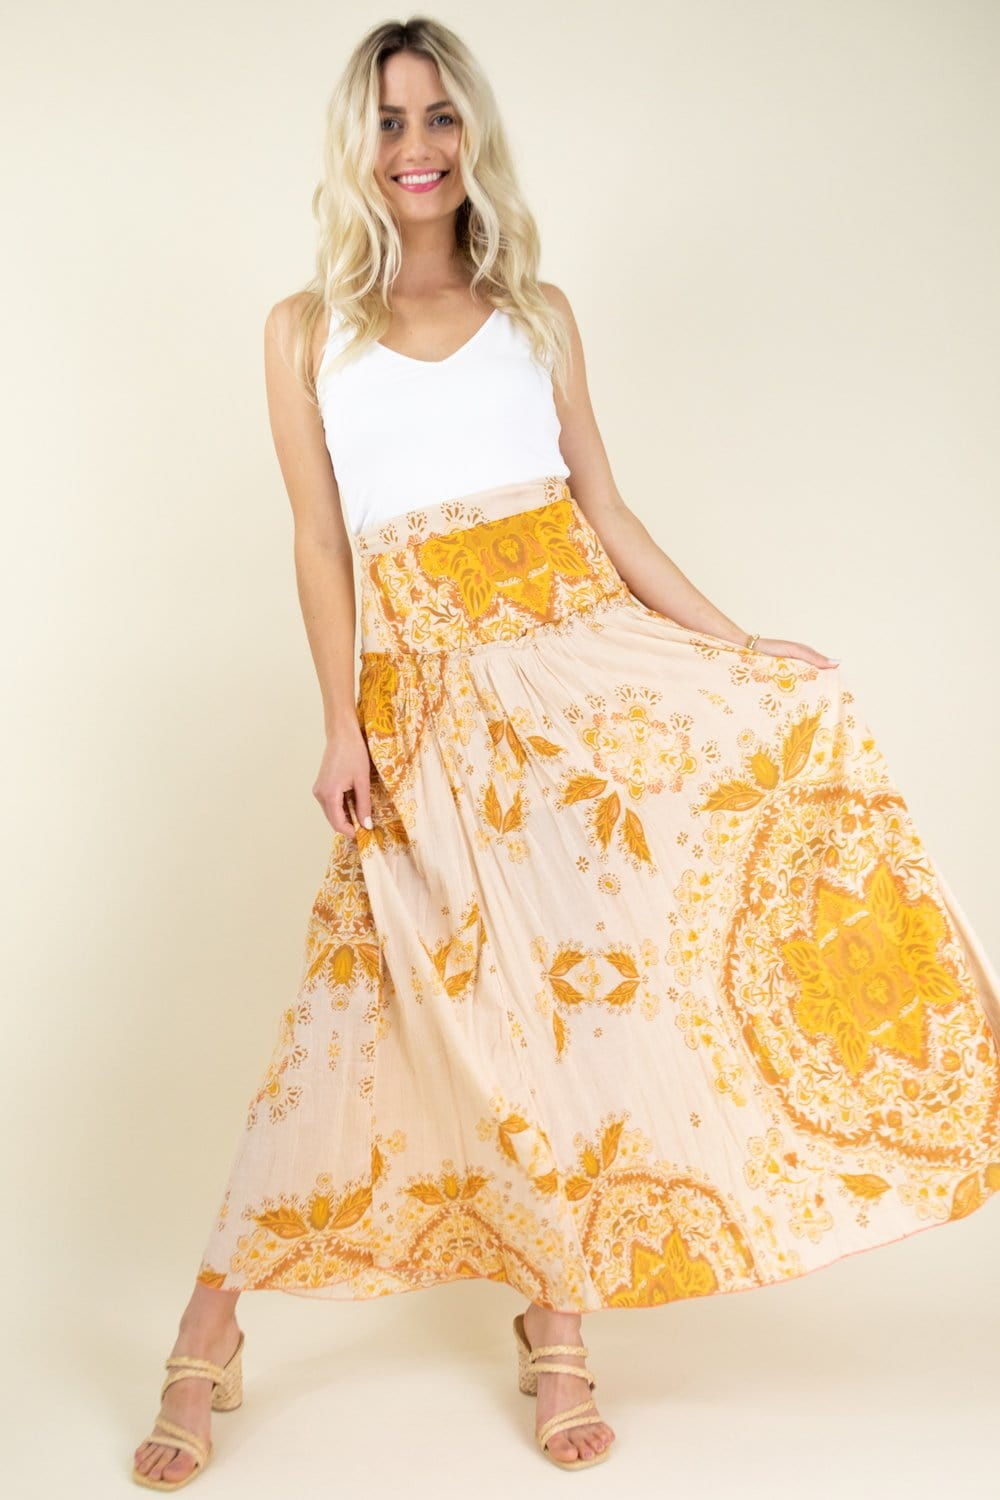 Free People Farrah Drop Waist Skirt | Wild Dove Boutique